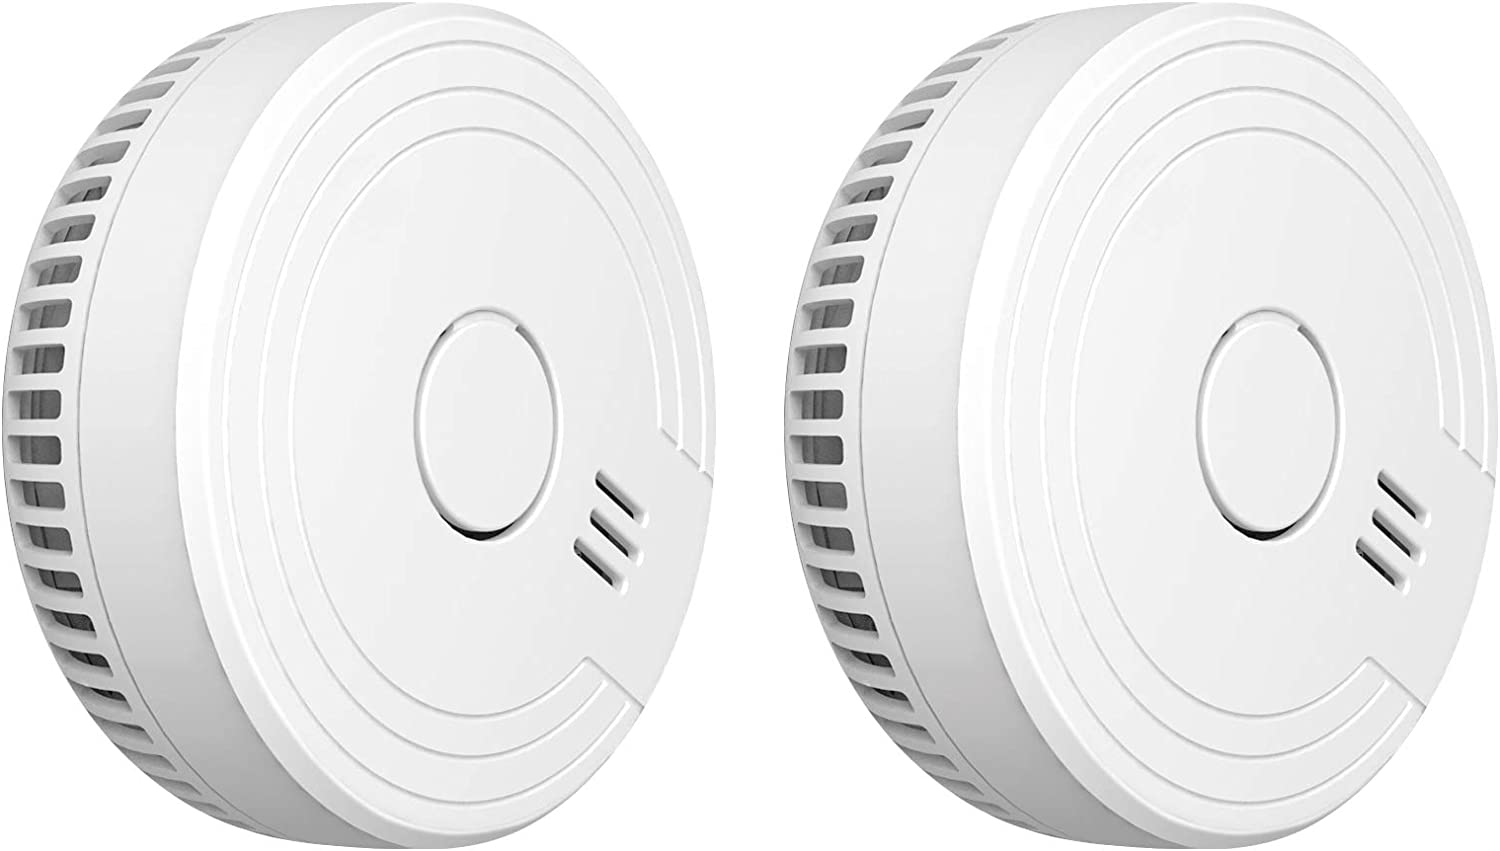 Ecoey Smoke Alarm Fire Detector, Battery Included Photoelectric Smoke Detector with Test Button and Low Battery Signal, Fire Alarm for House, FJ136GB, 2 Packs